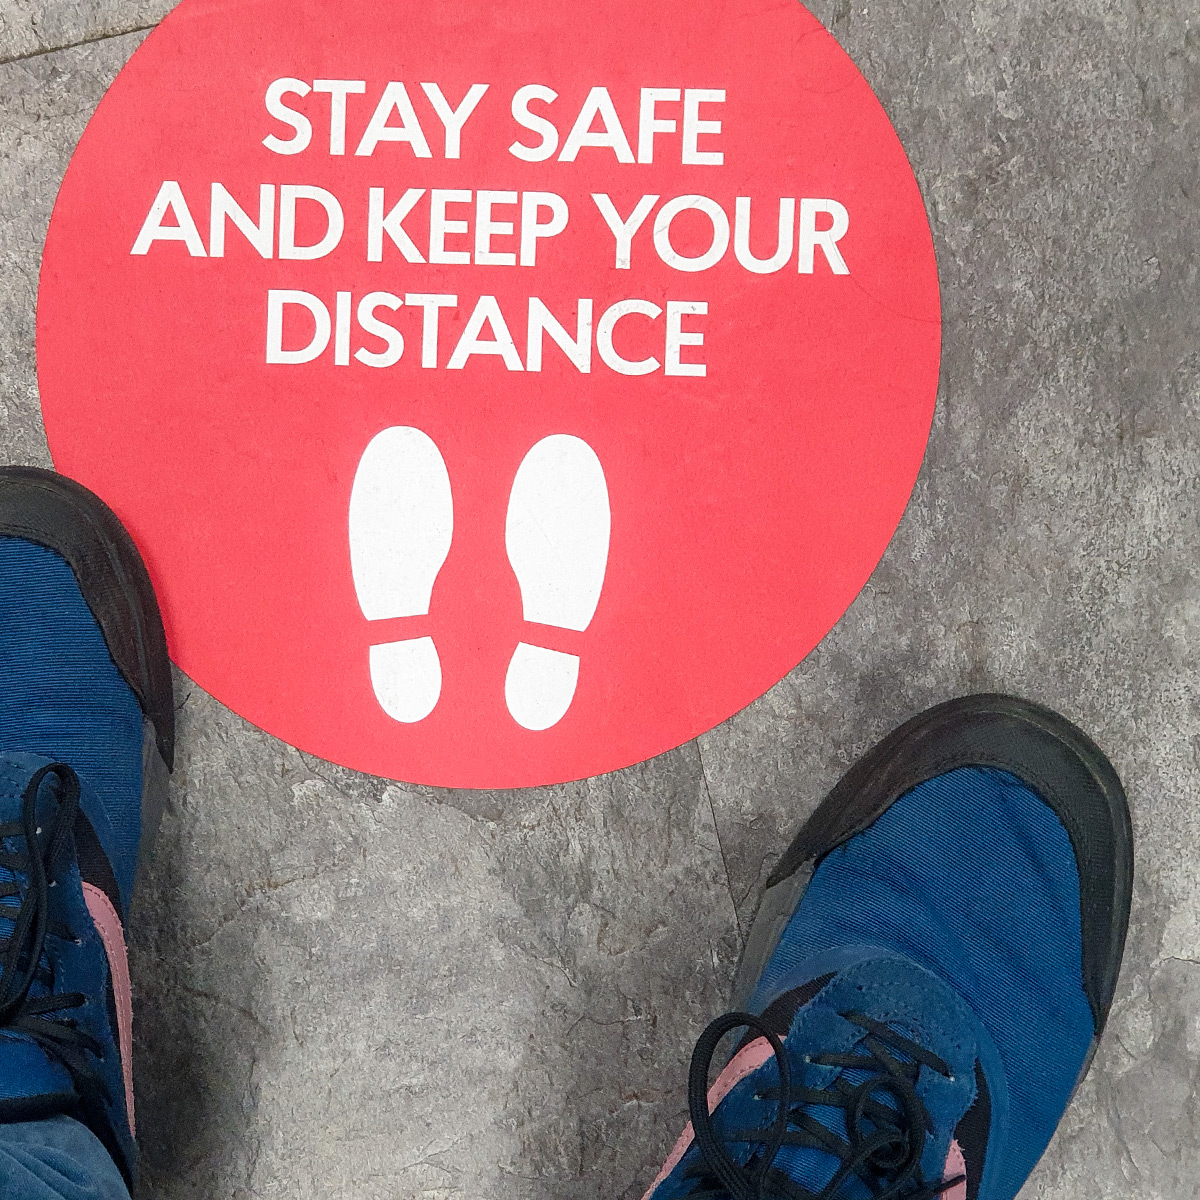 Stay safe and keep your distance graphic on floor